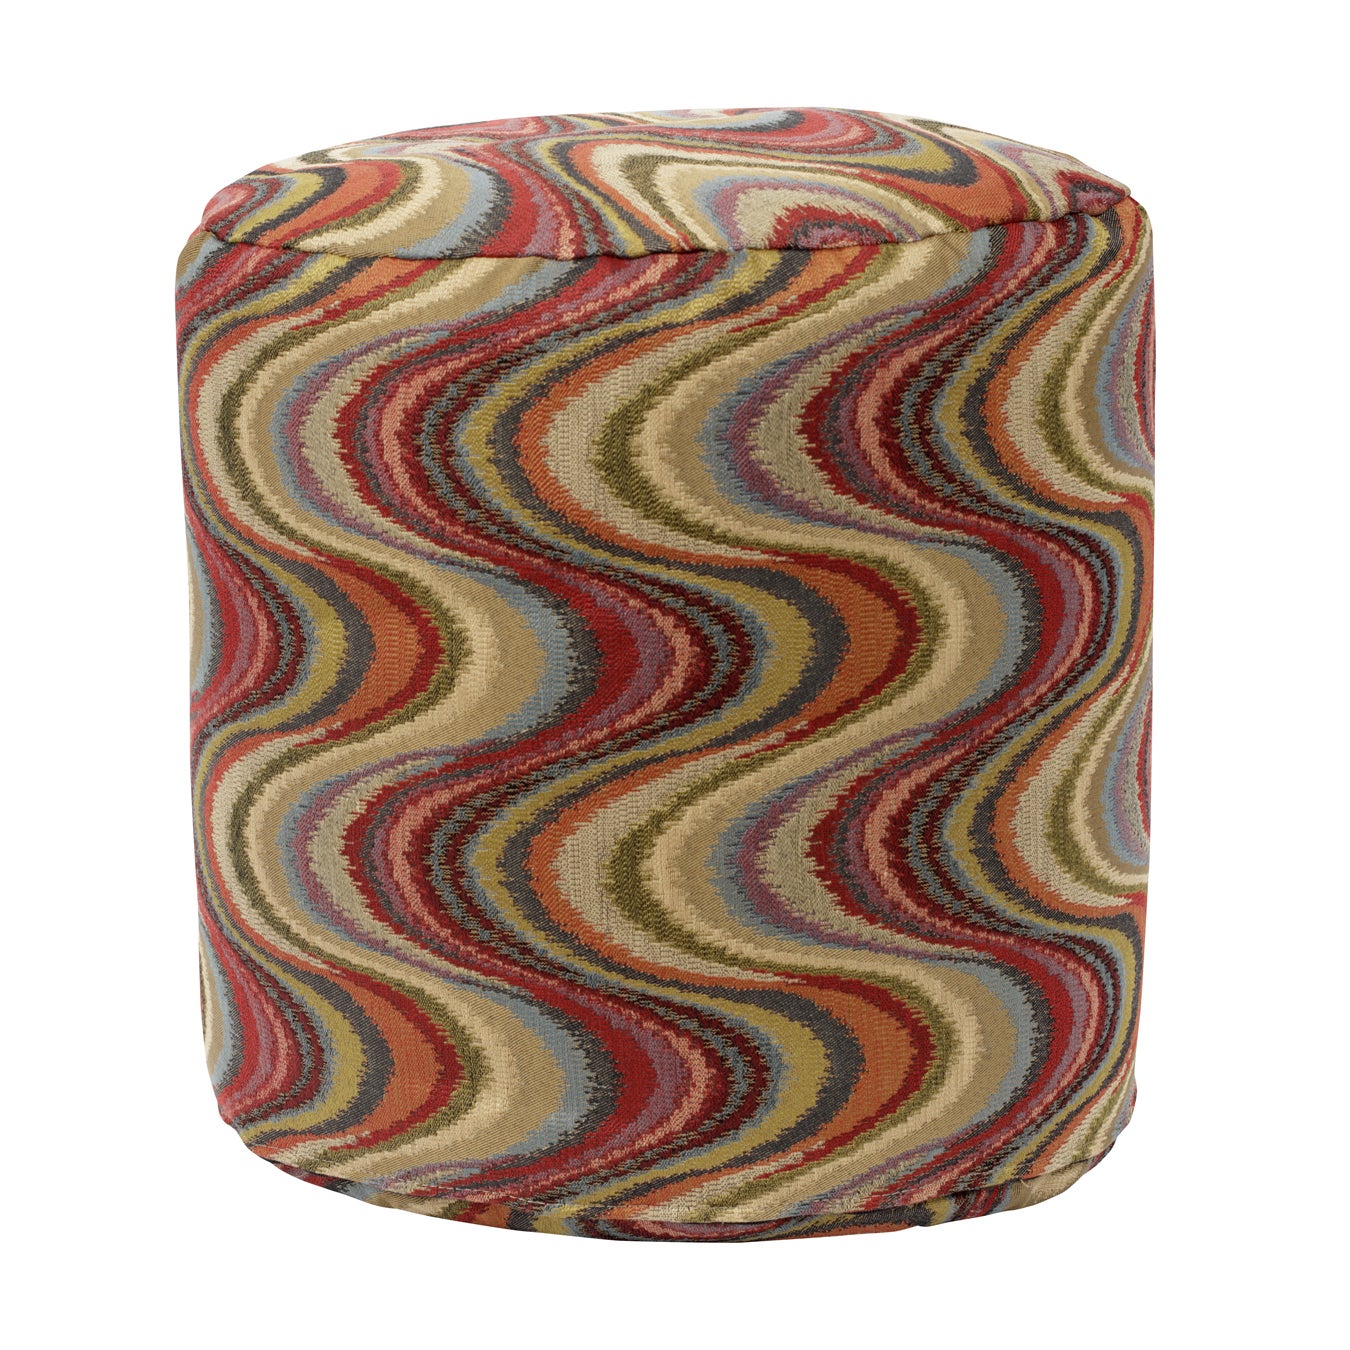 American Frequency Tomato Tapestry Pouf Ottoman, Brown, S...